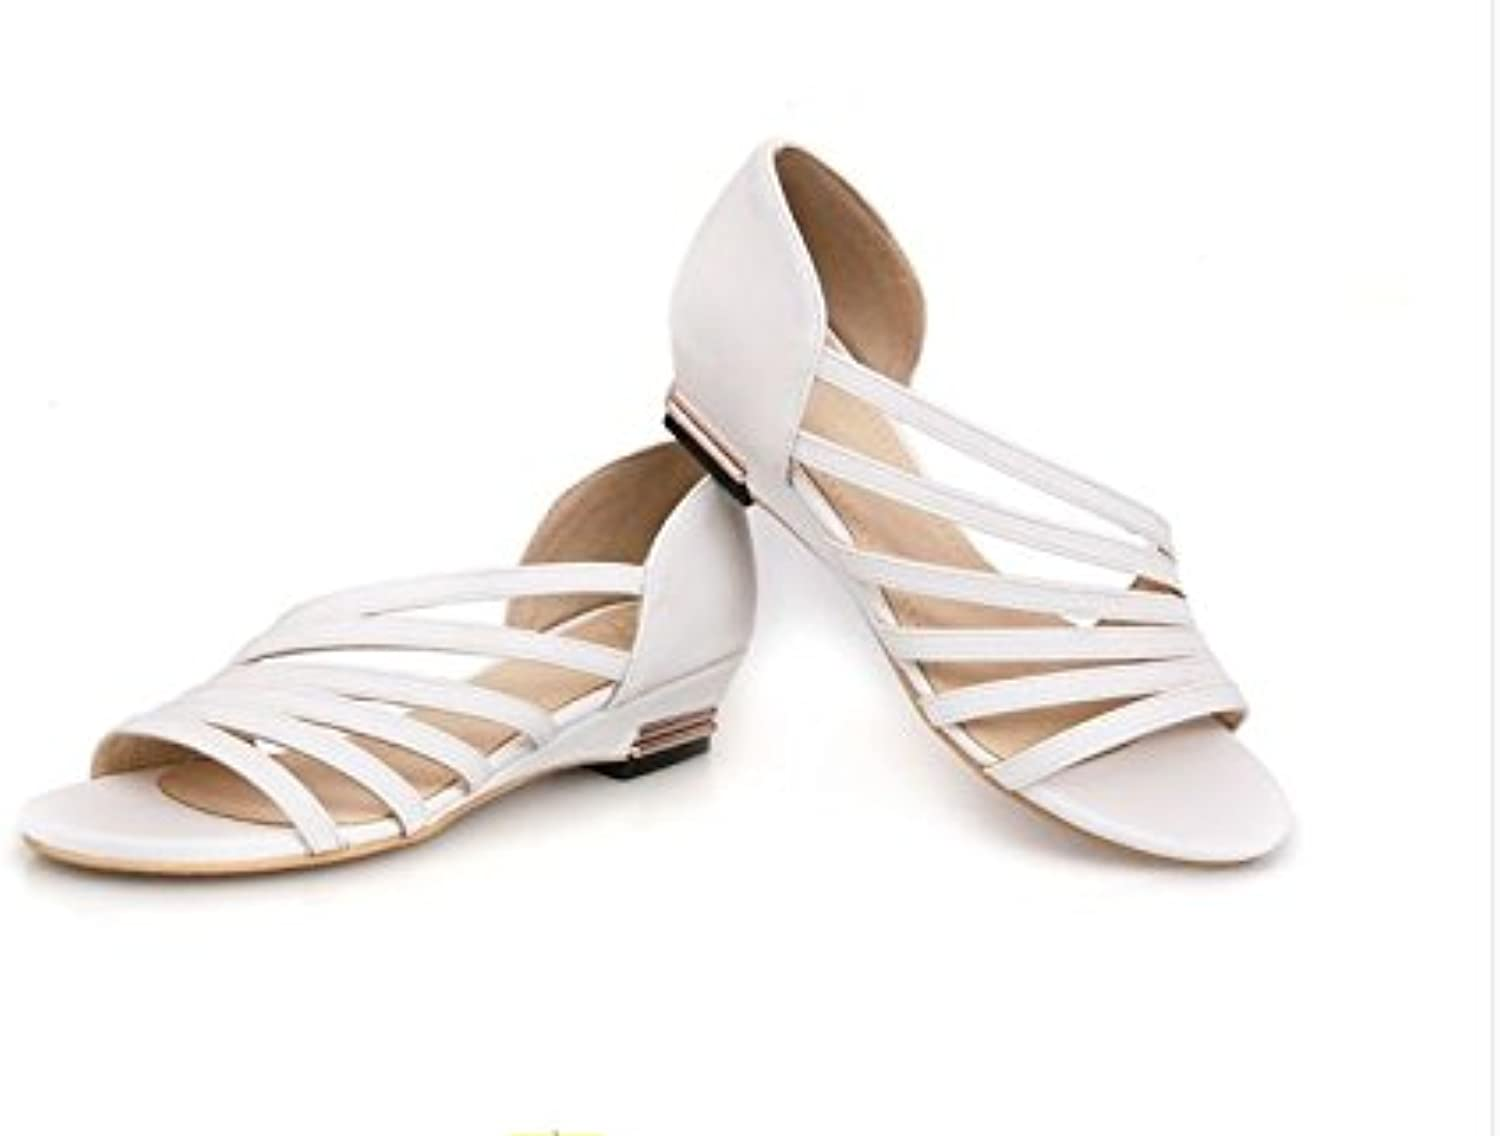 WHW Women's Spring Summer Fall Comfort Novelty PU Wedding Party Evening Dress Stiletto Heel Sandals,31,White